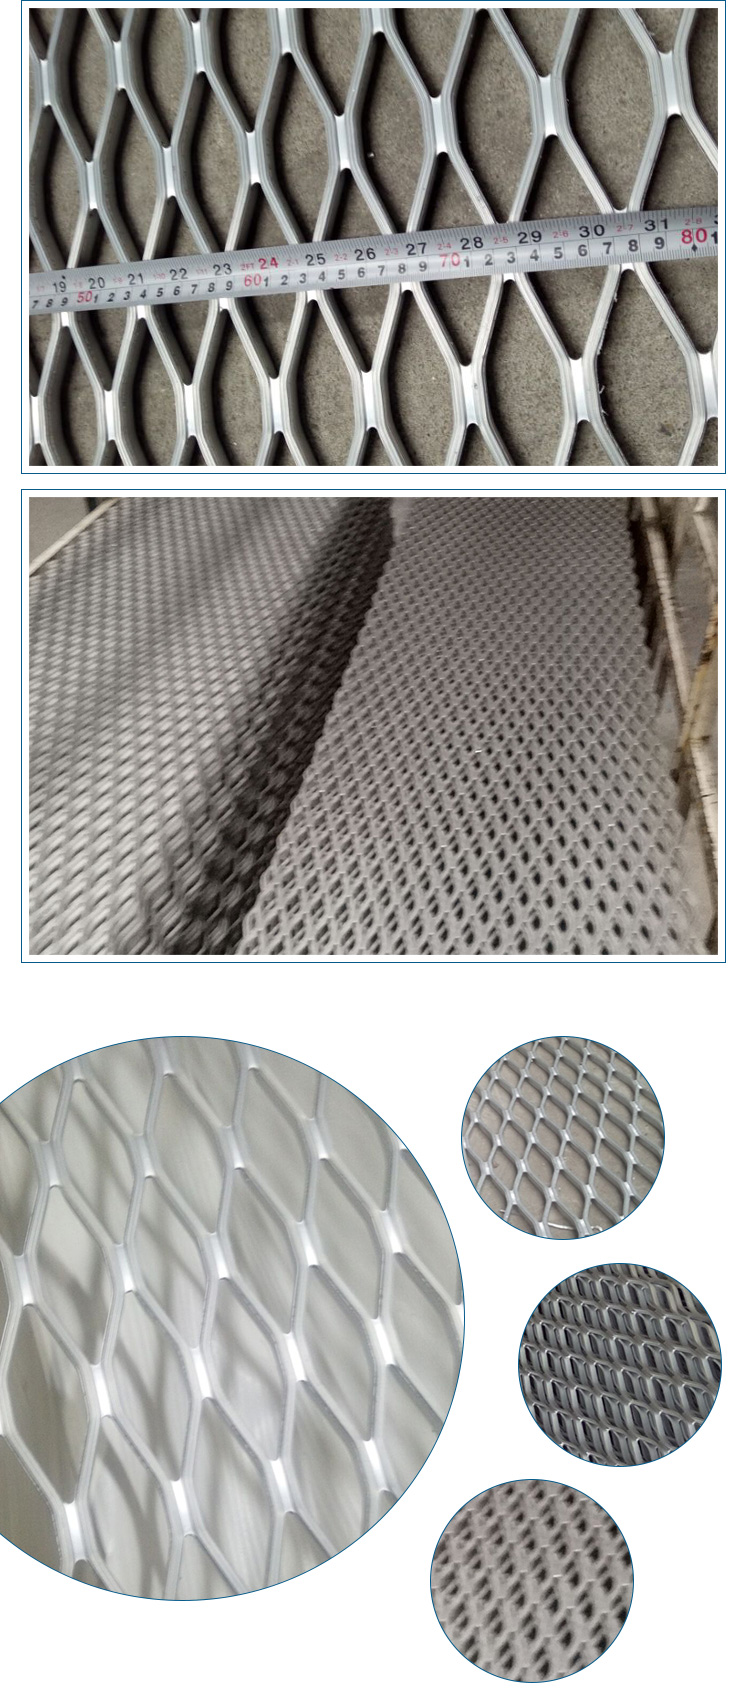 slip resistance 13mm anodized aluminum serrated walkway grating for safety walkway